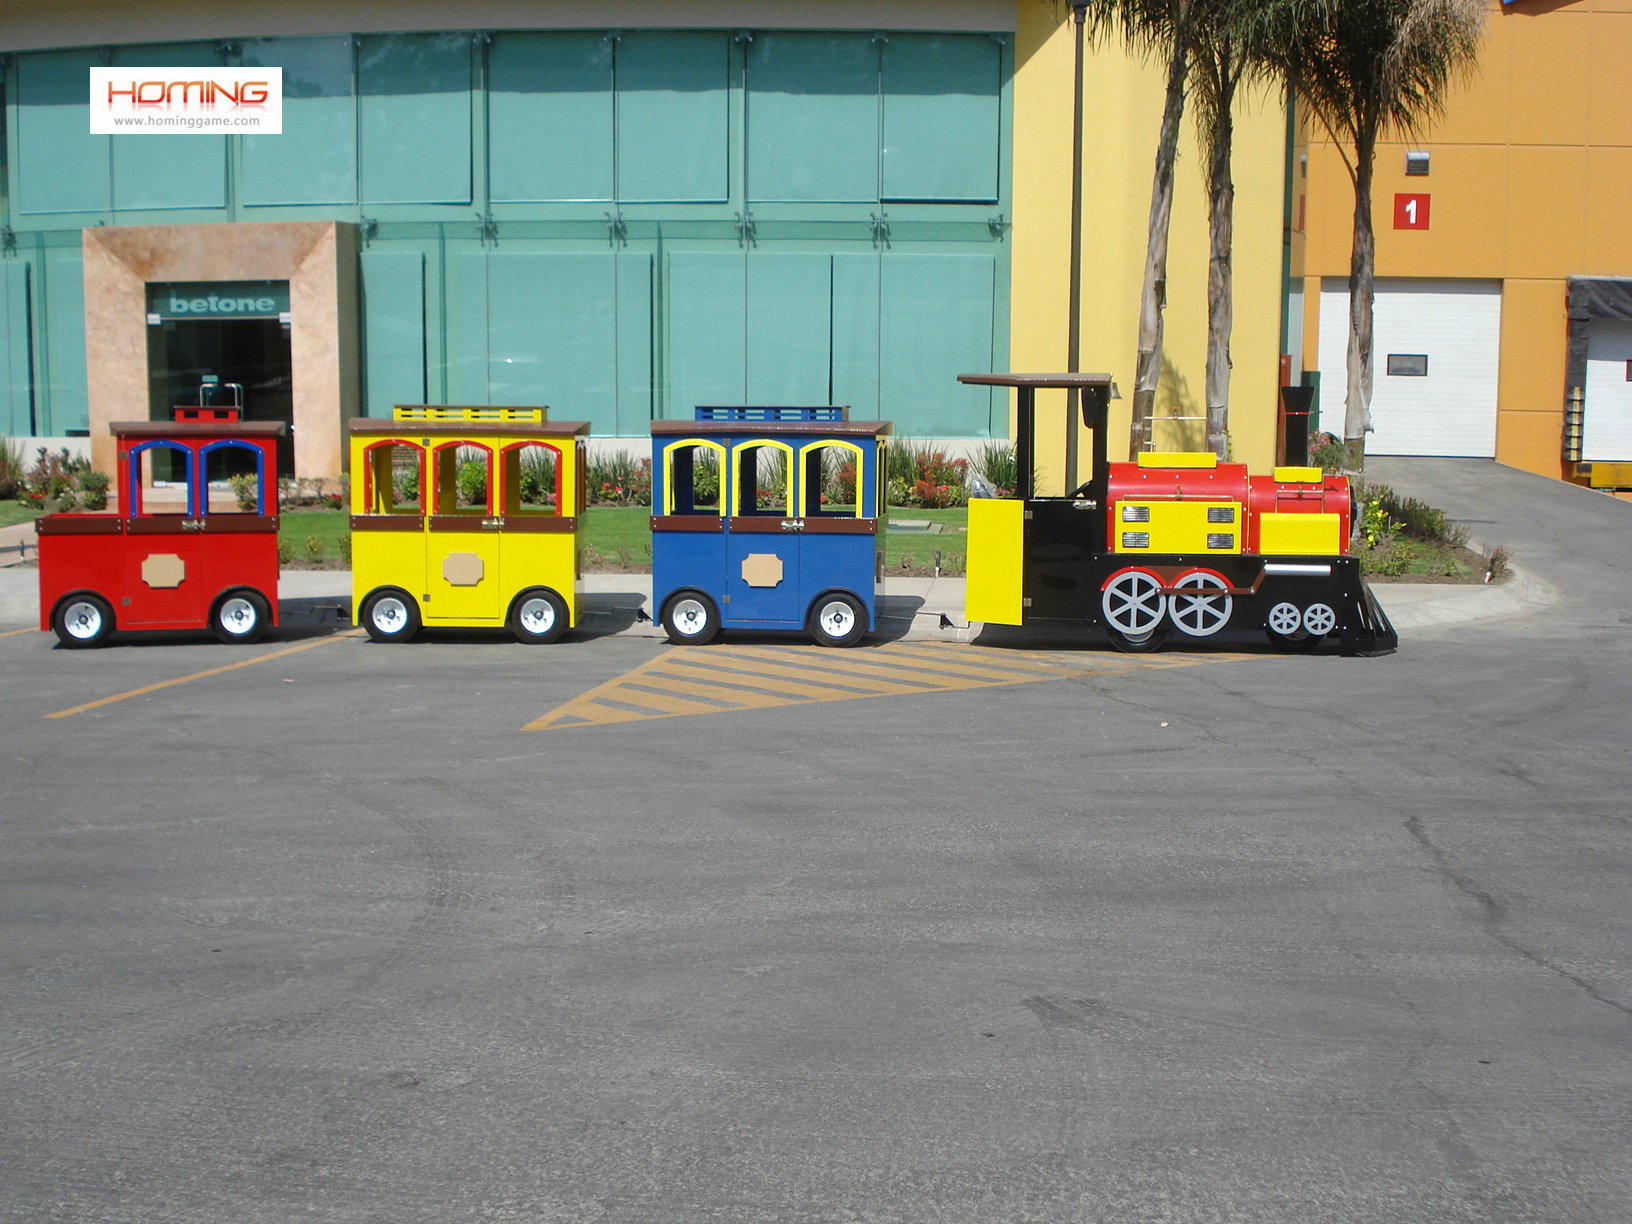 Trackless train amusement equipment,trackless train,trackless train amusement equipment,trackless train equipment,game machine,arcade game machine,amusement park game equipment,outdoor game equipment,game equipment,amusement machine,park game equipment,park game machine,coin operated game machine